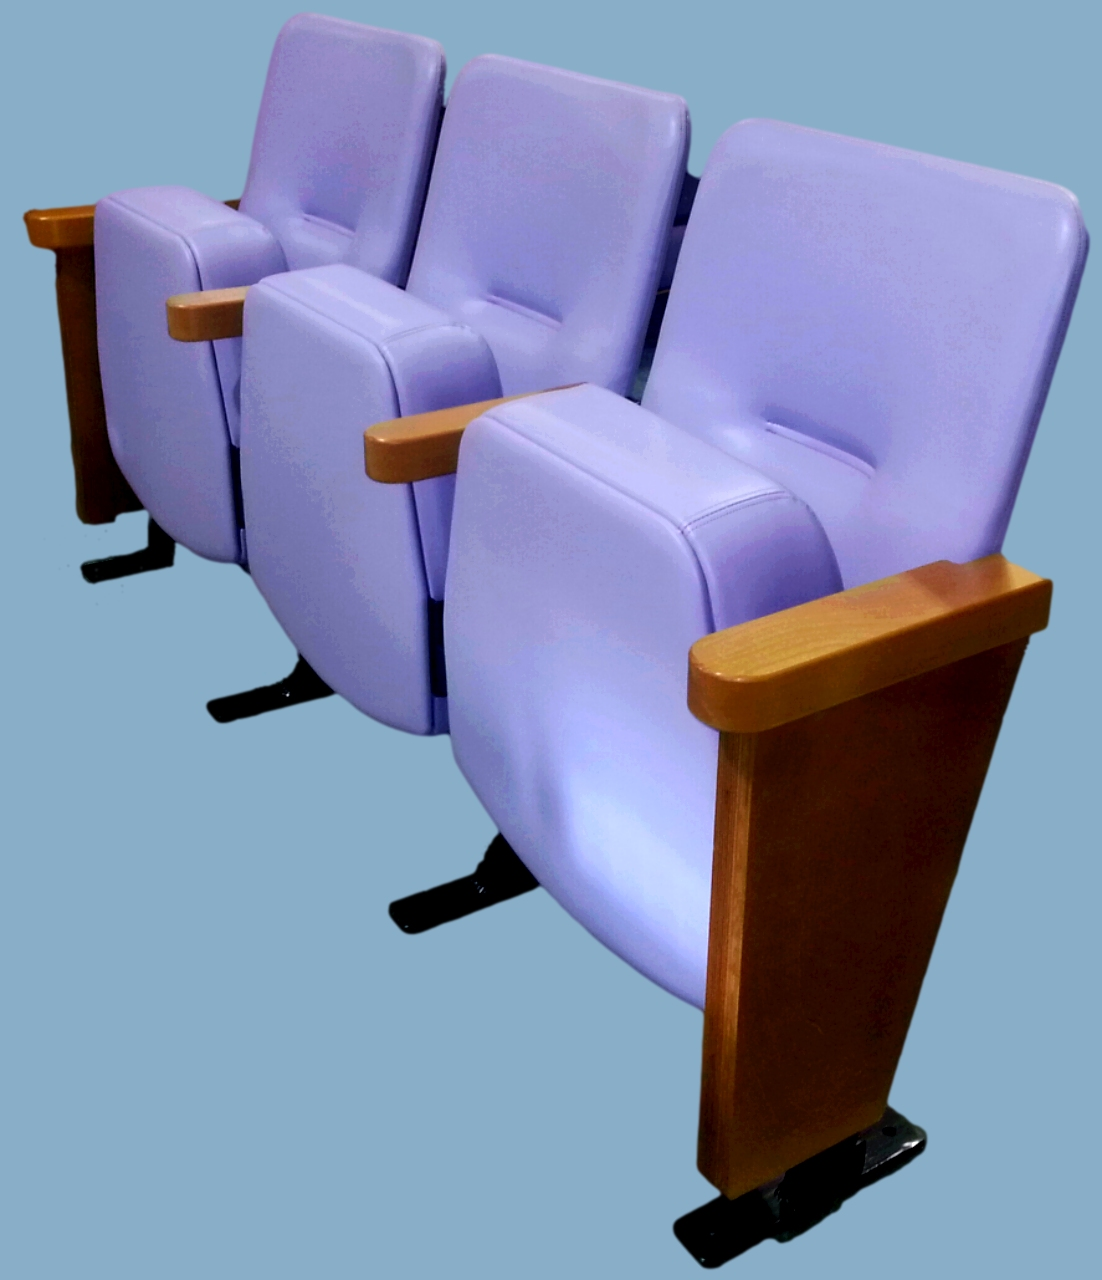 nhs posture chair cane chairs new zealand bradford beam seating evertaut